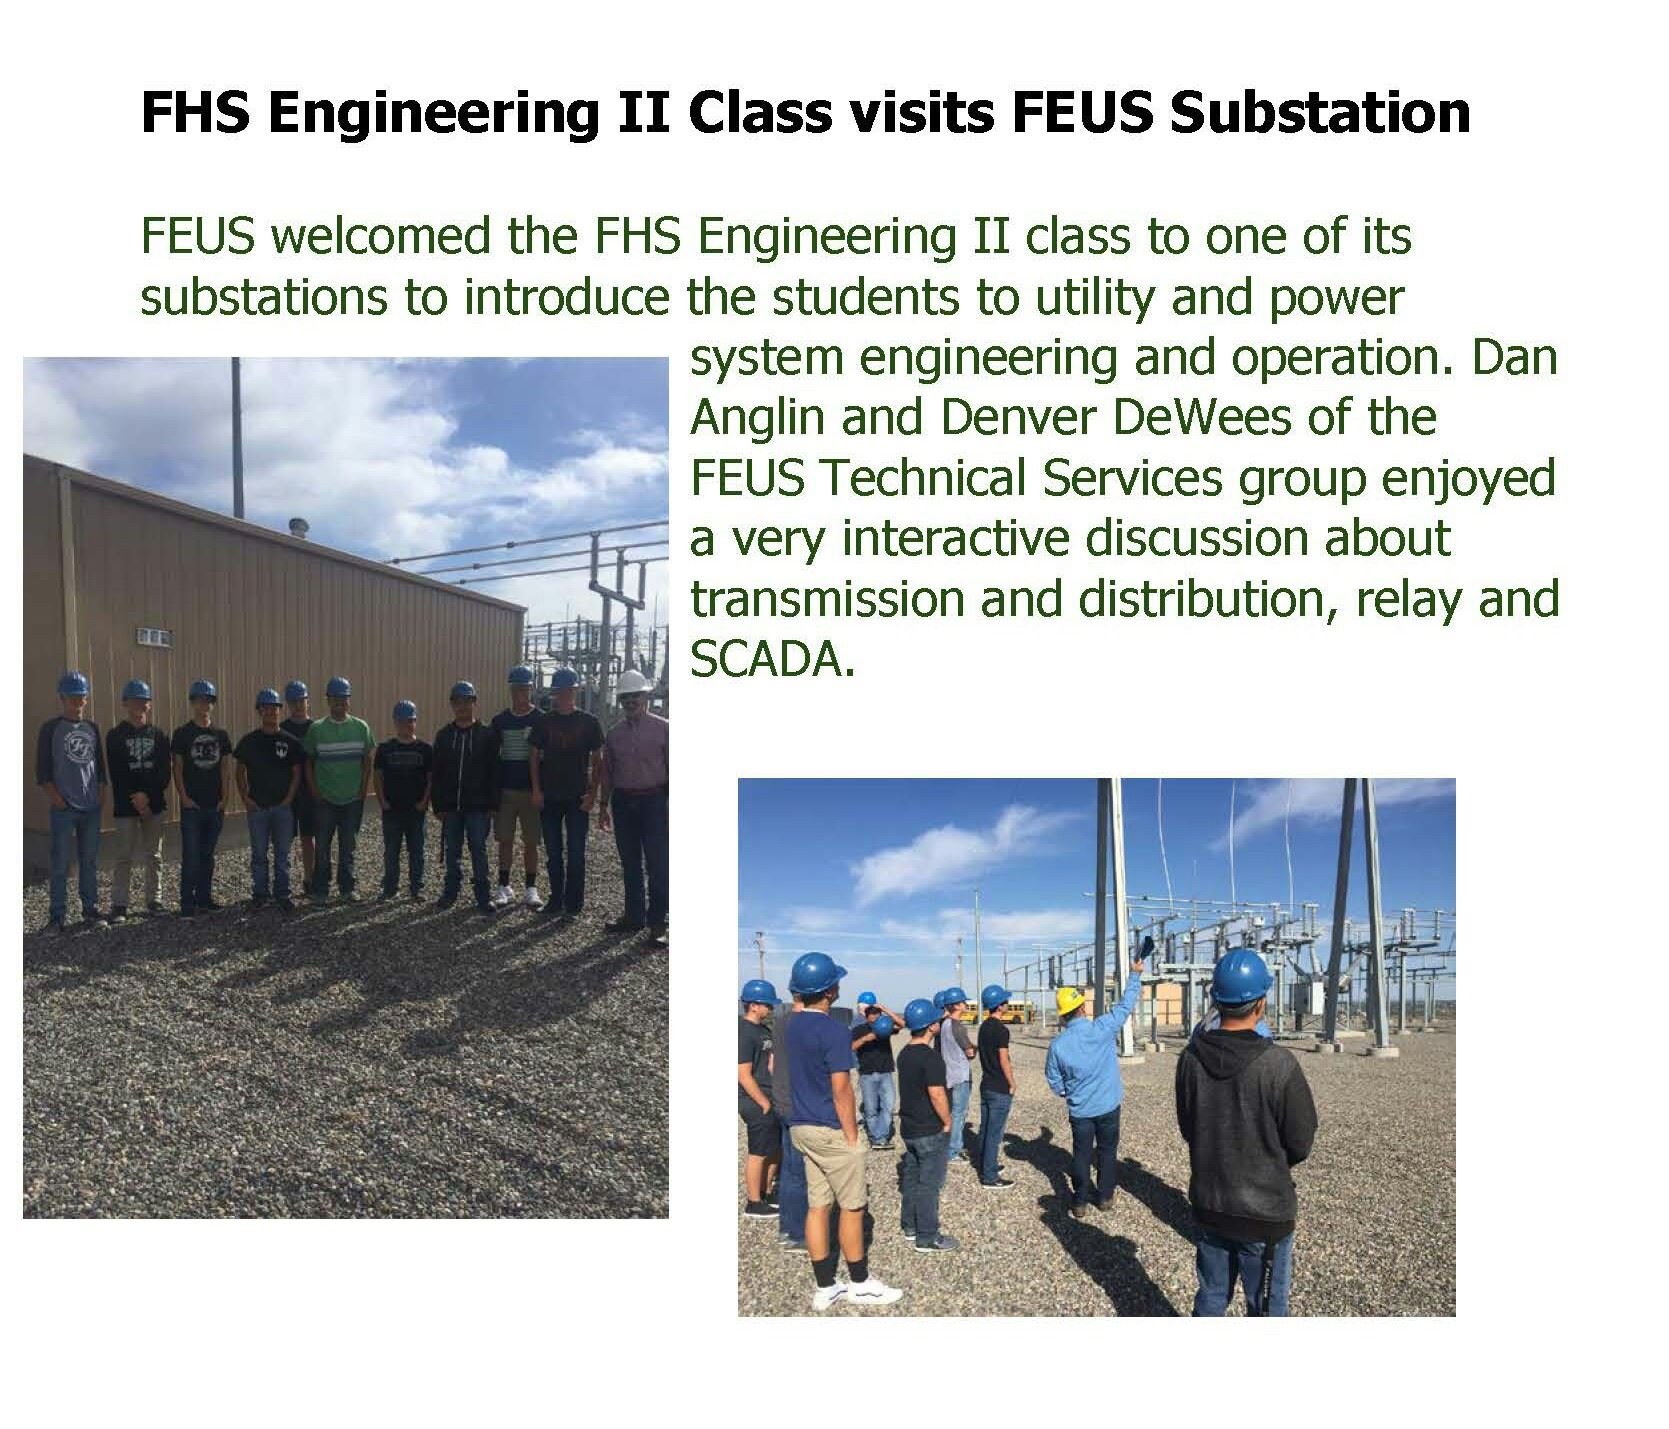 FHS Engineering II Class visits FEUS Substation